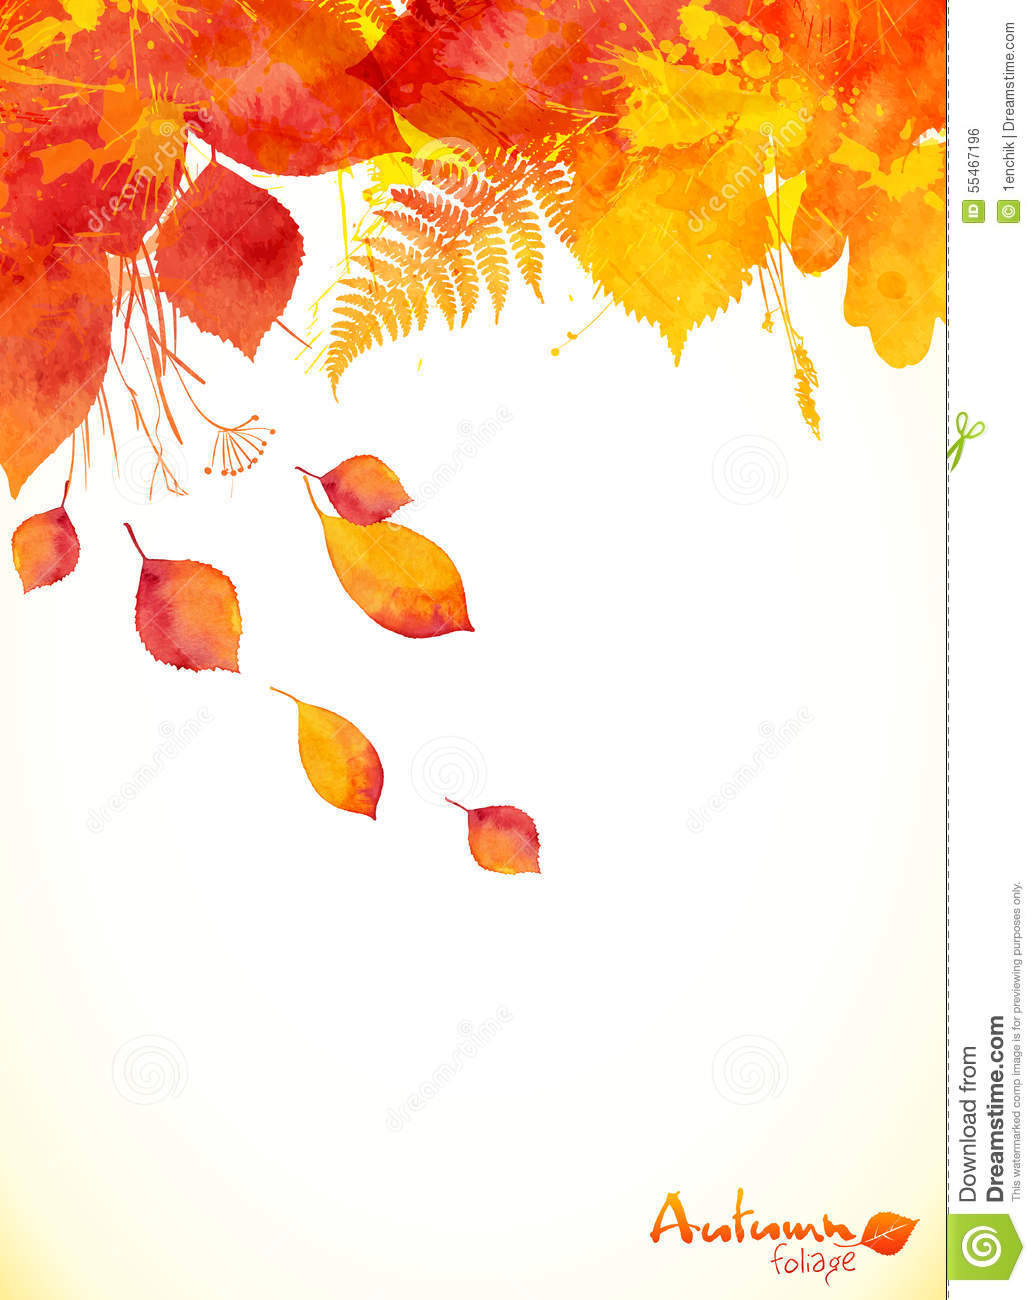 Falling Maple Leaves Wallpaper Red Watercolor Autumn Leaves Fall Leaflet Stock Vector